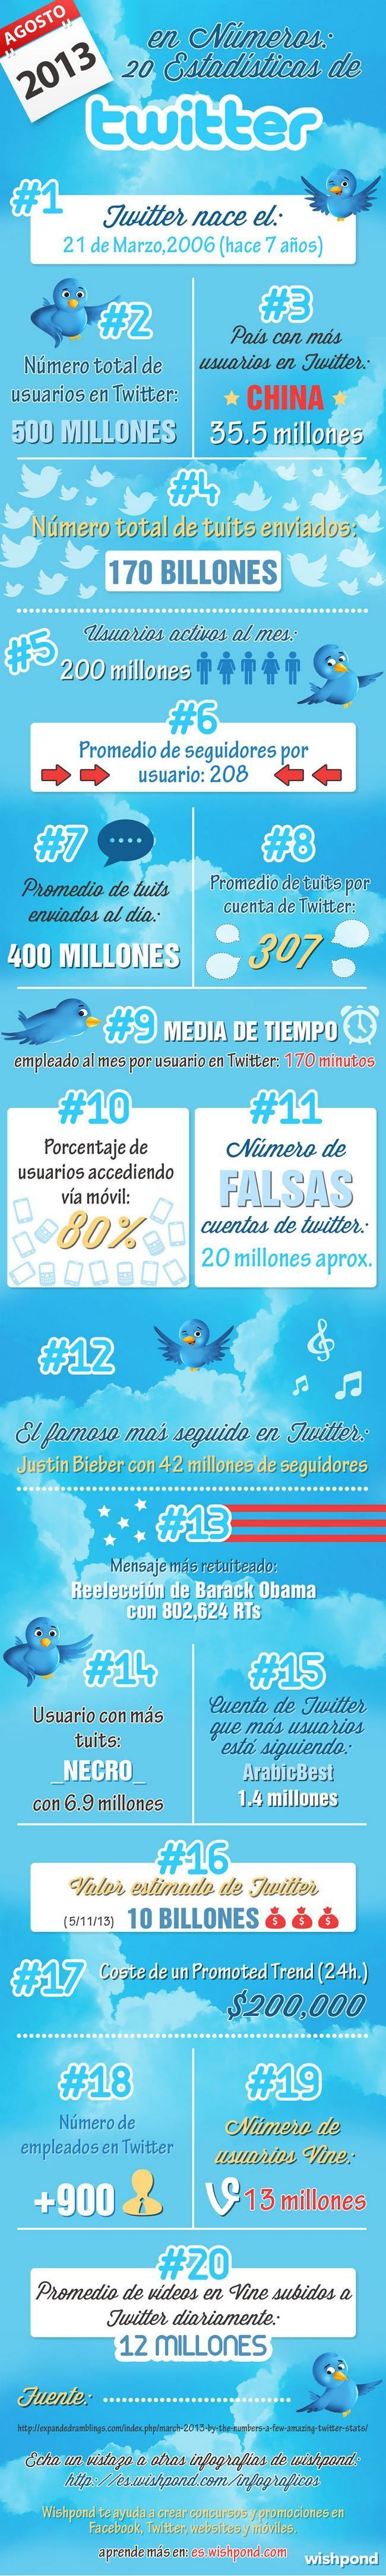 Twitterfacts